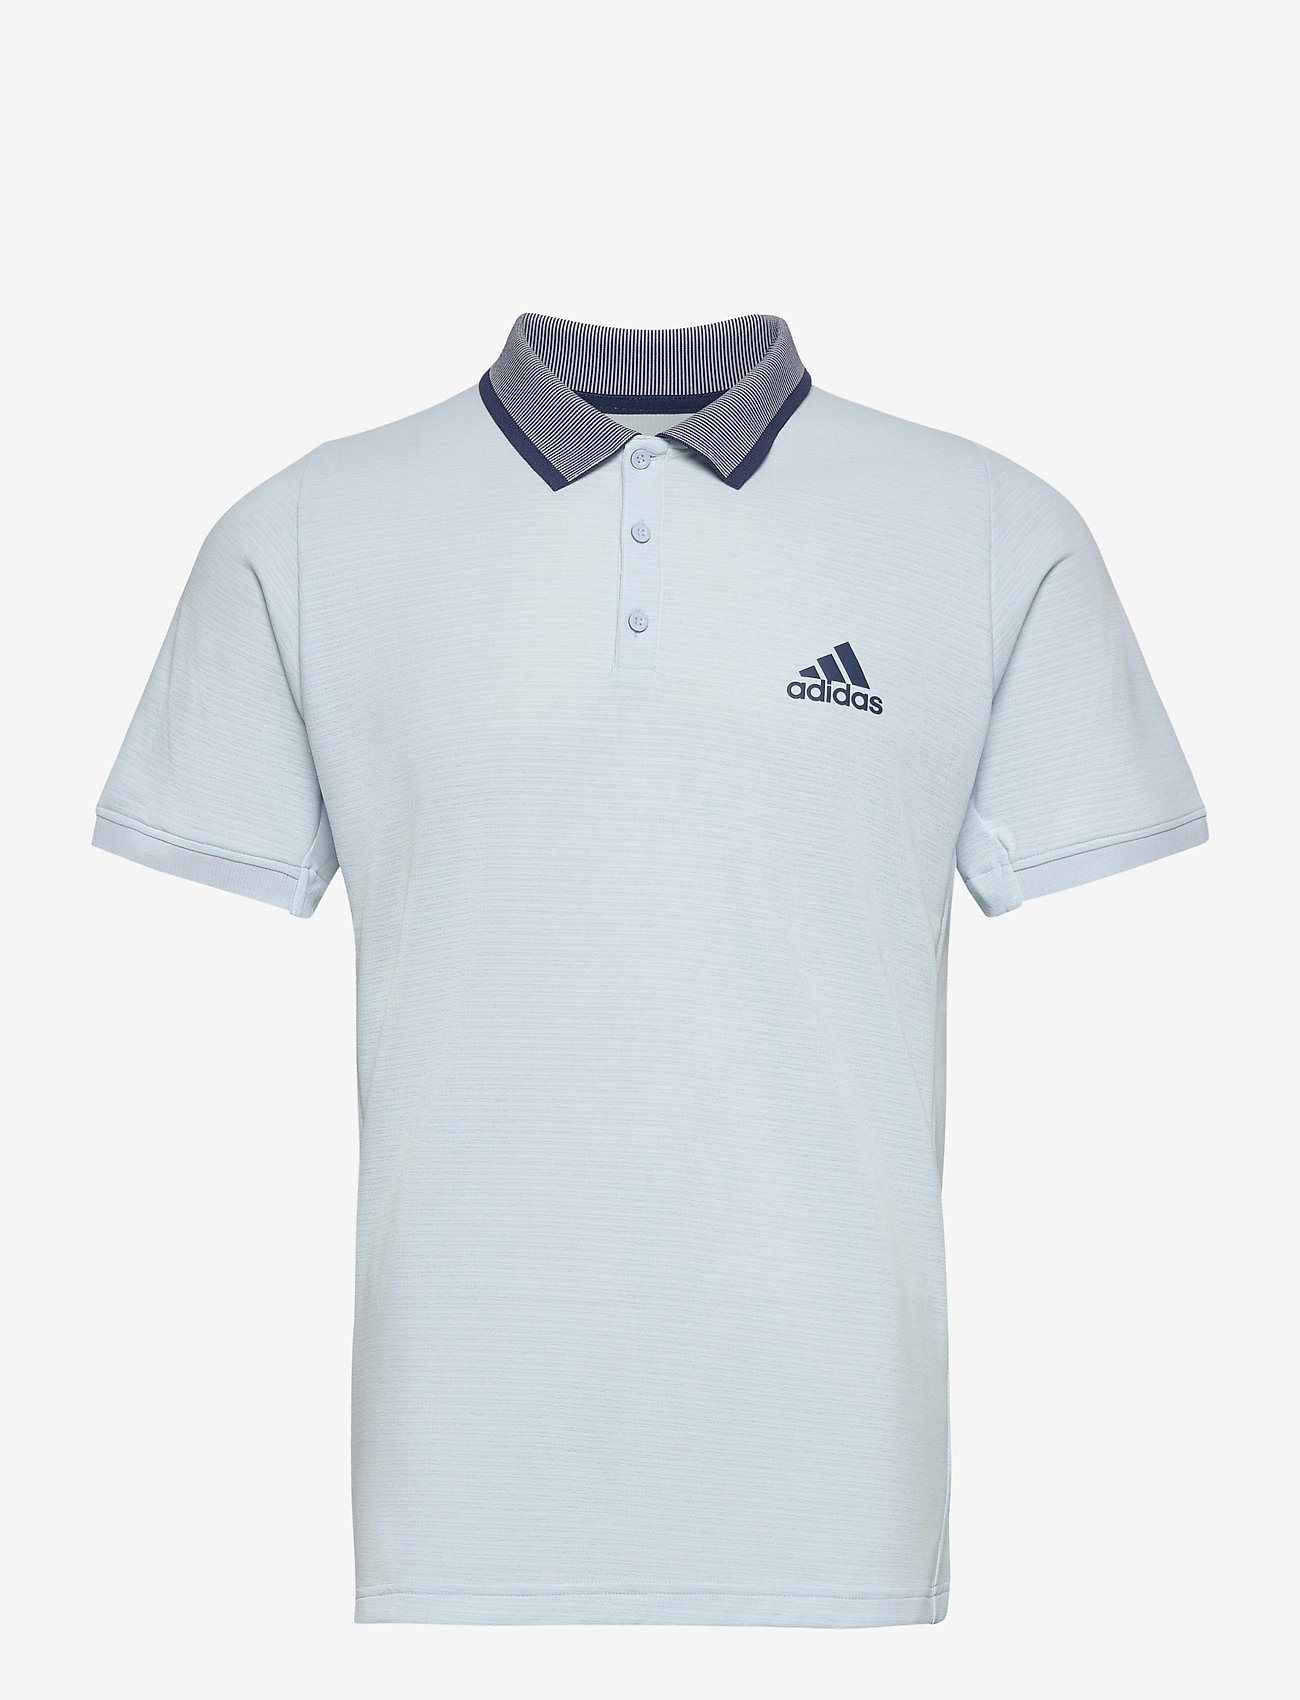 adidas Performance - FREELIFT TENNIS POLO SHIRT AEROREADY - paidat - light blue - 0